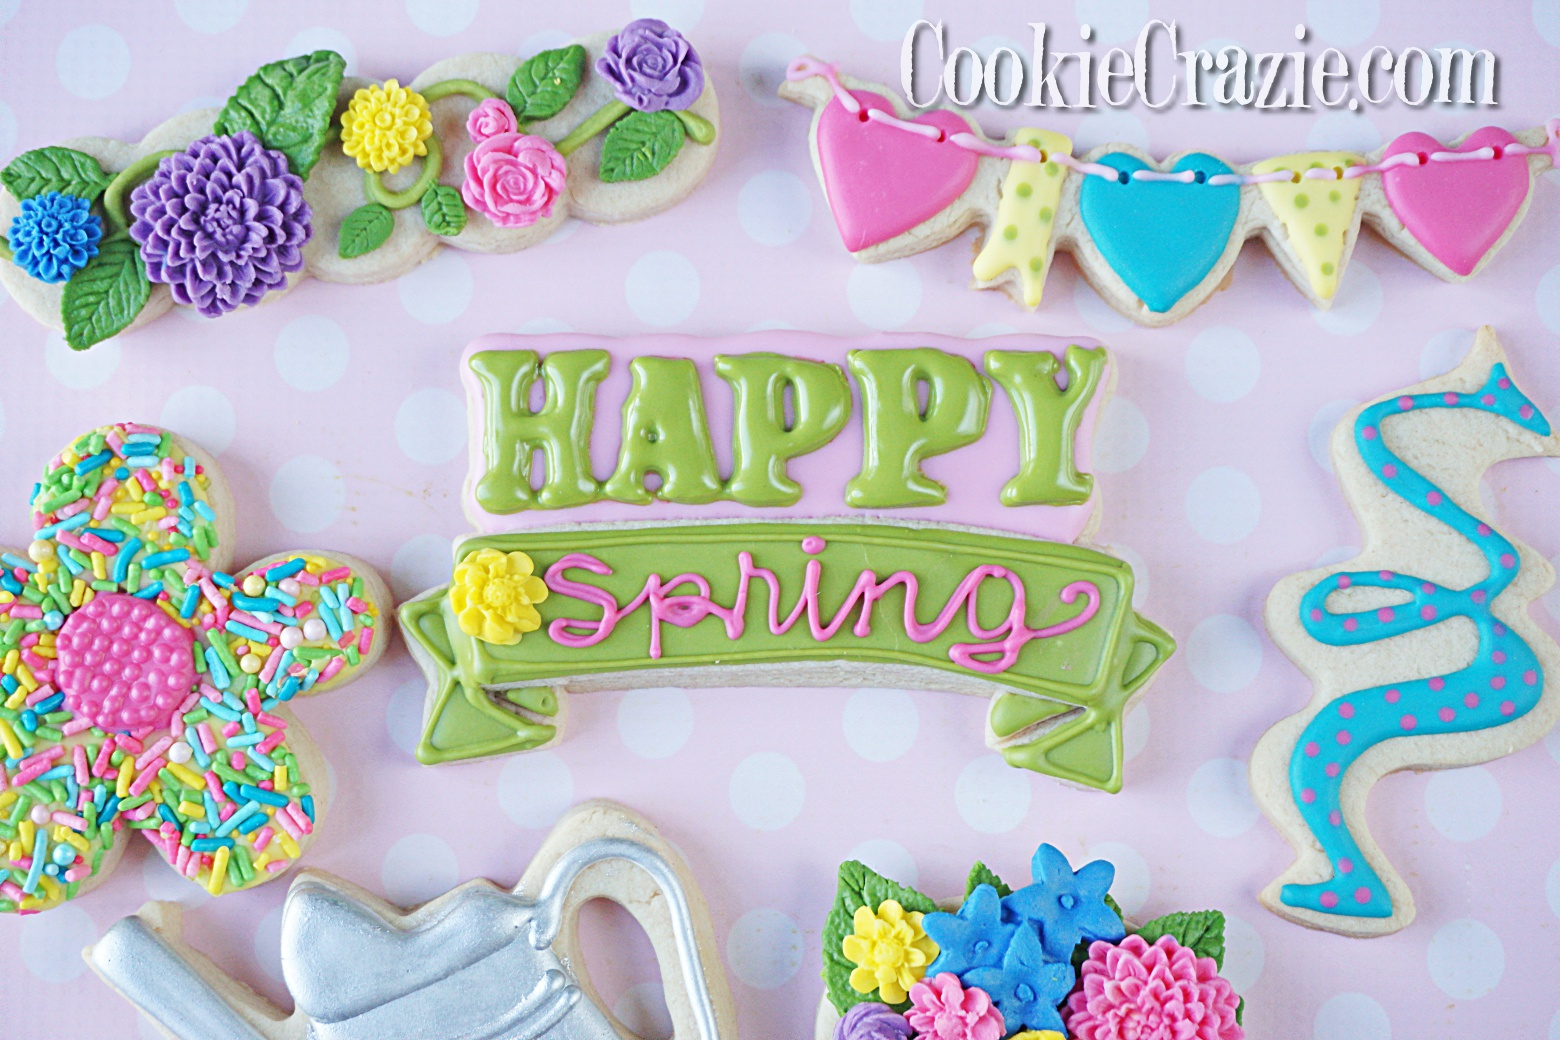 Happy Spring Plaque Decorated Sugar Cookie YouTube video  HERE